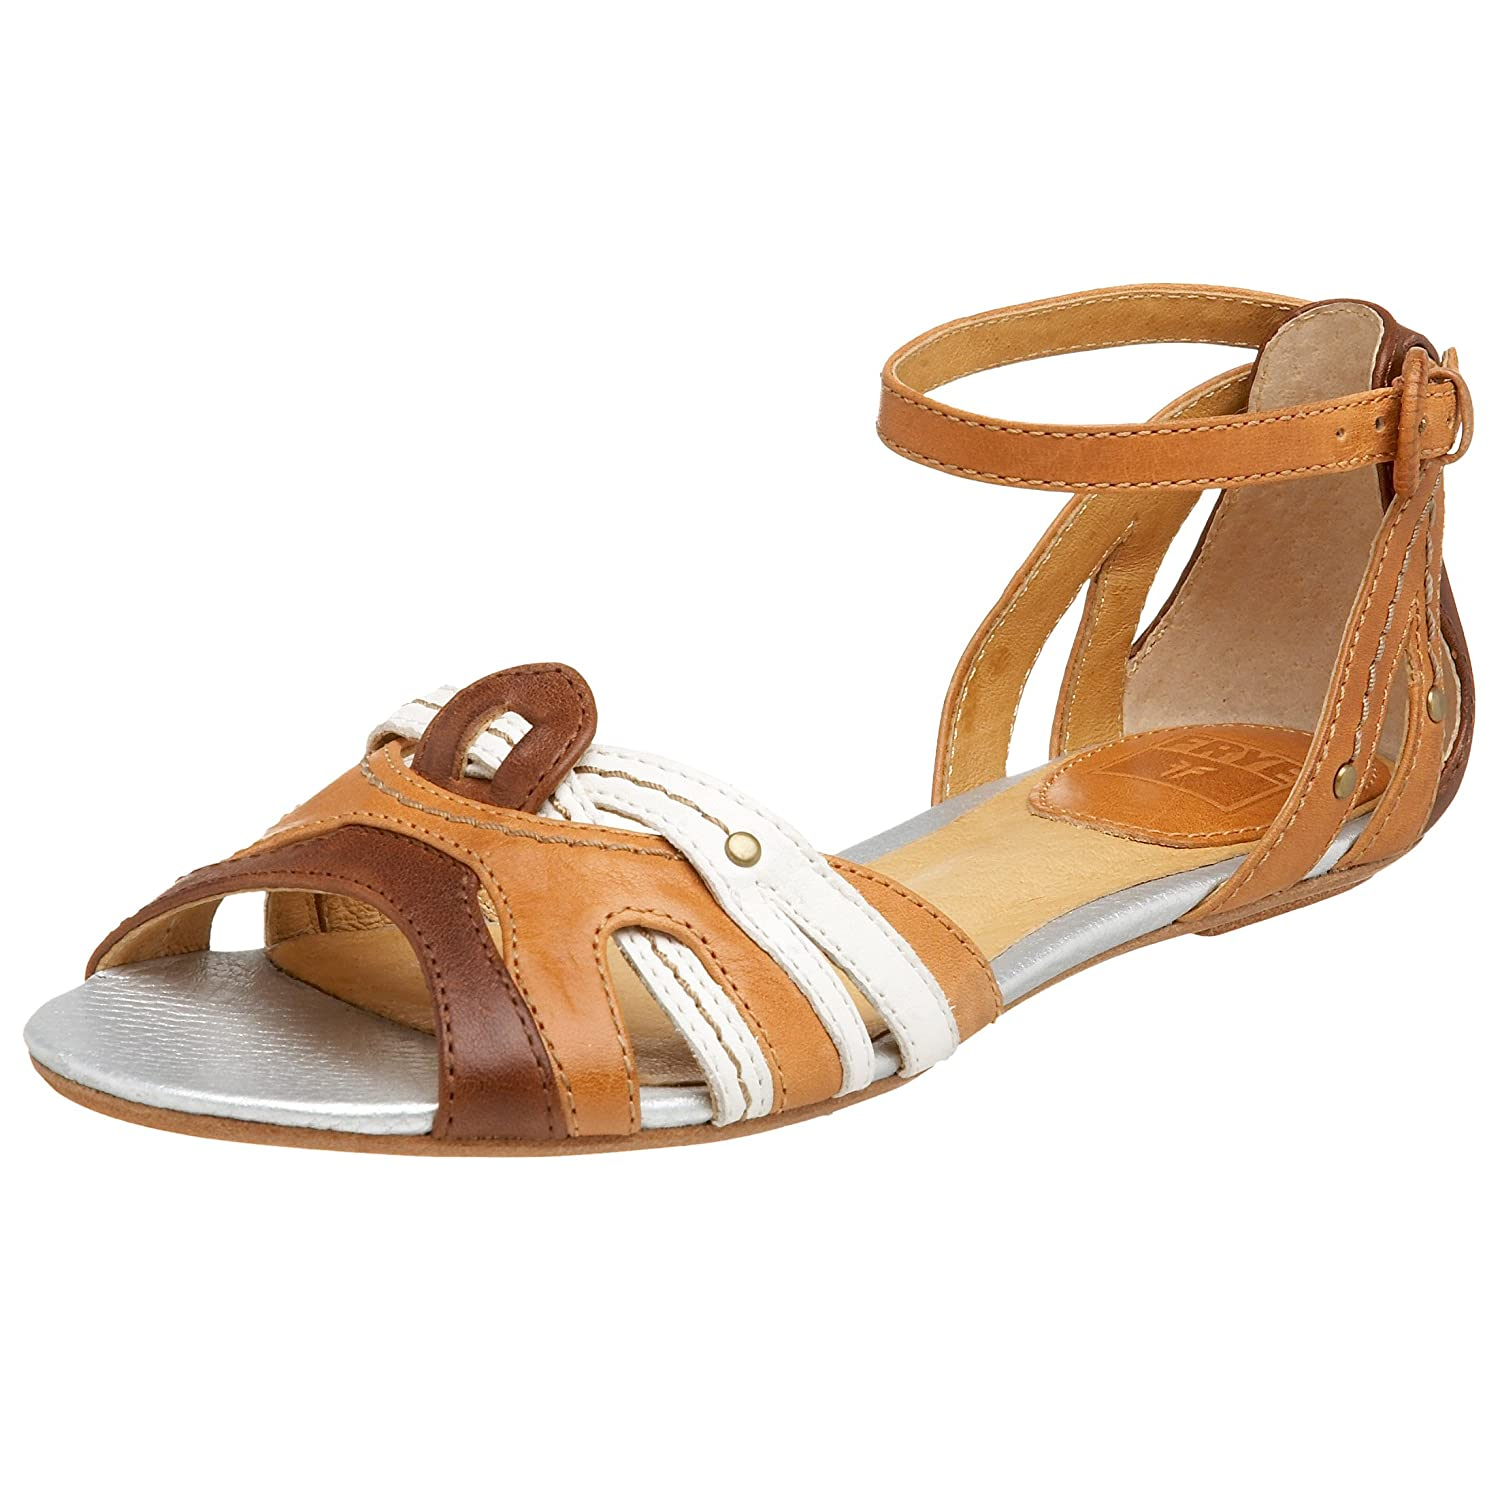 Frye Vanessa Flat - Free Overnight Shipping & Return Shipping: Endless.com :  flat retro flats sandals